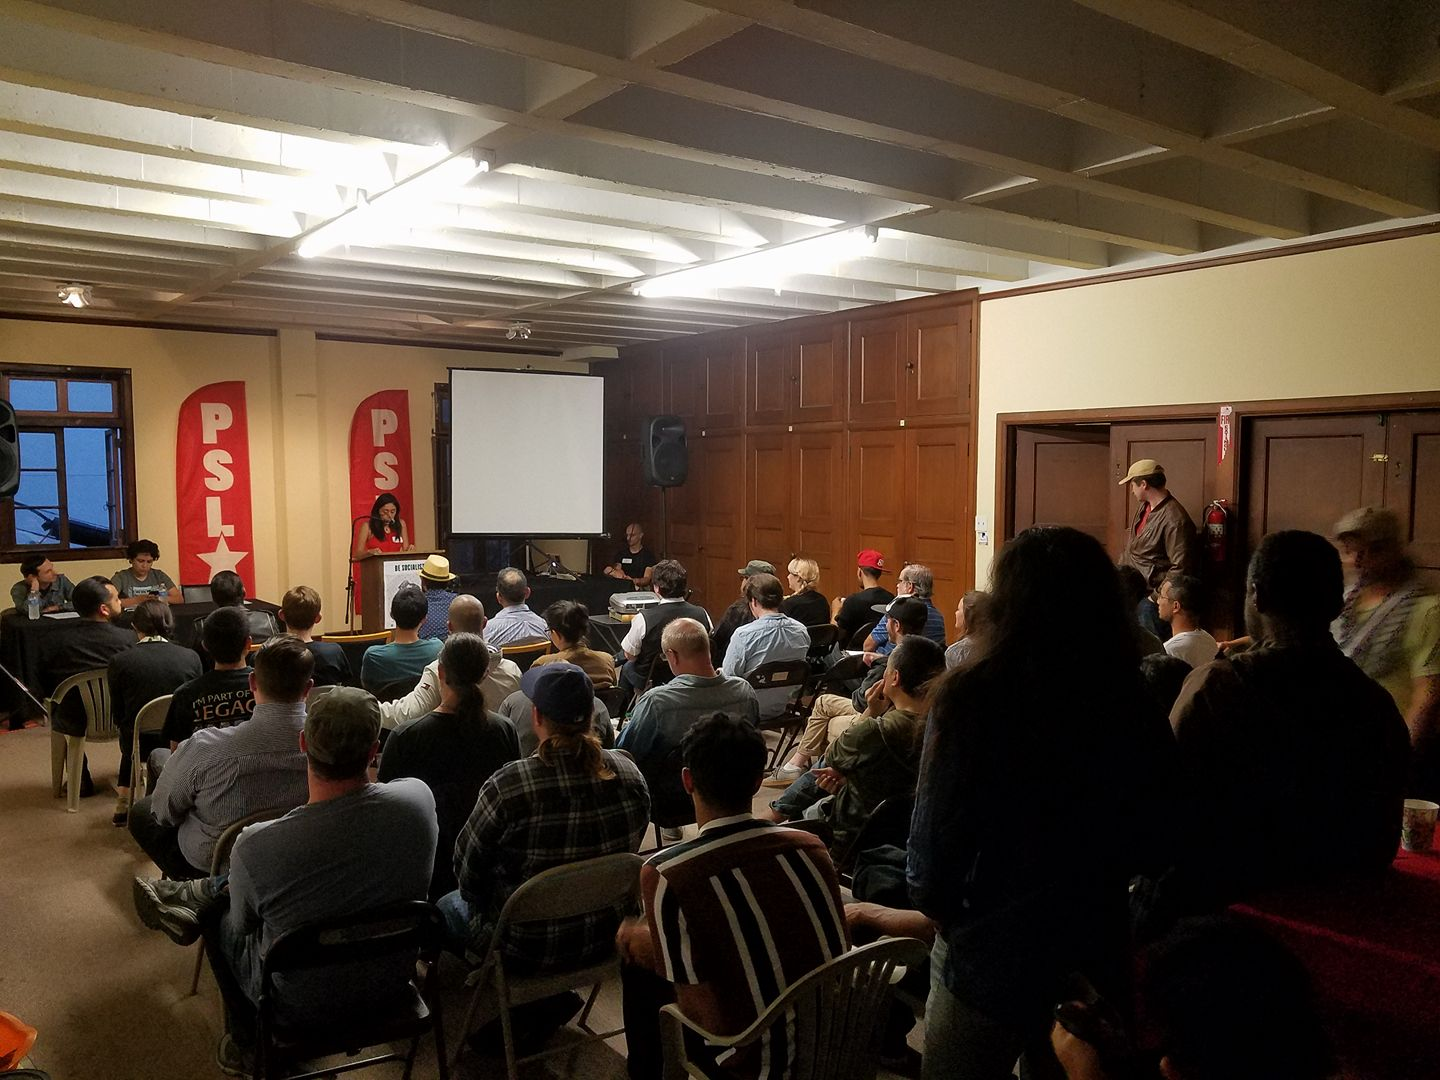 Photo of Los Angeles: PSL forum on Venezuela proceeds despite right-wing aggression